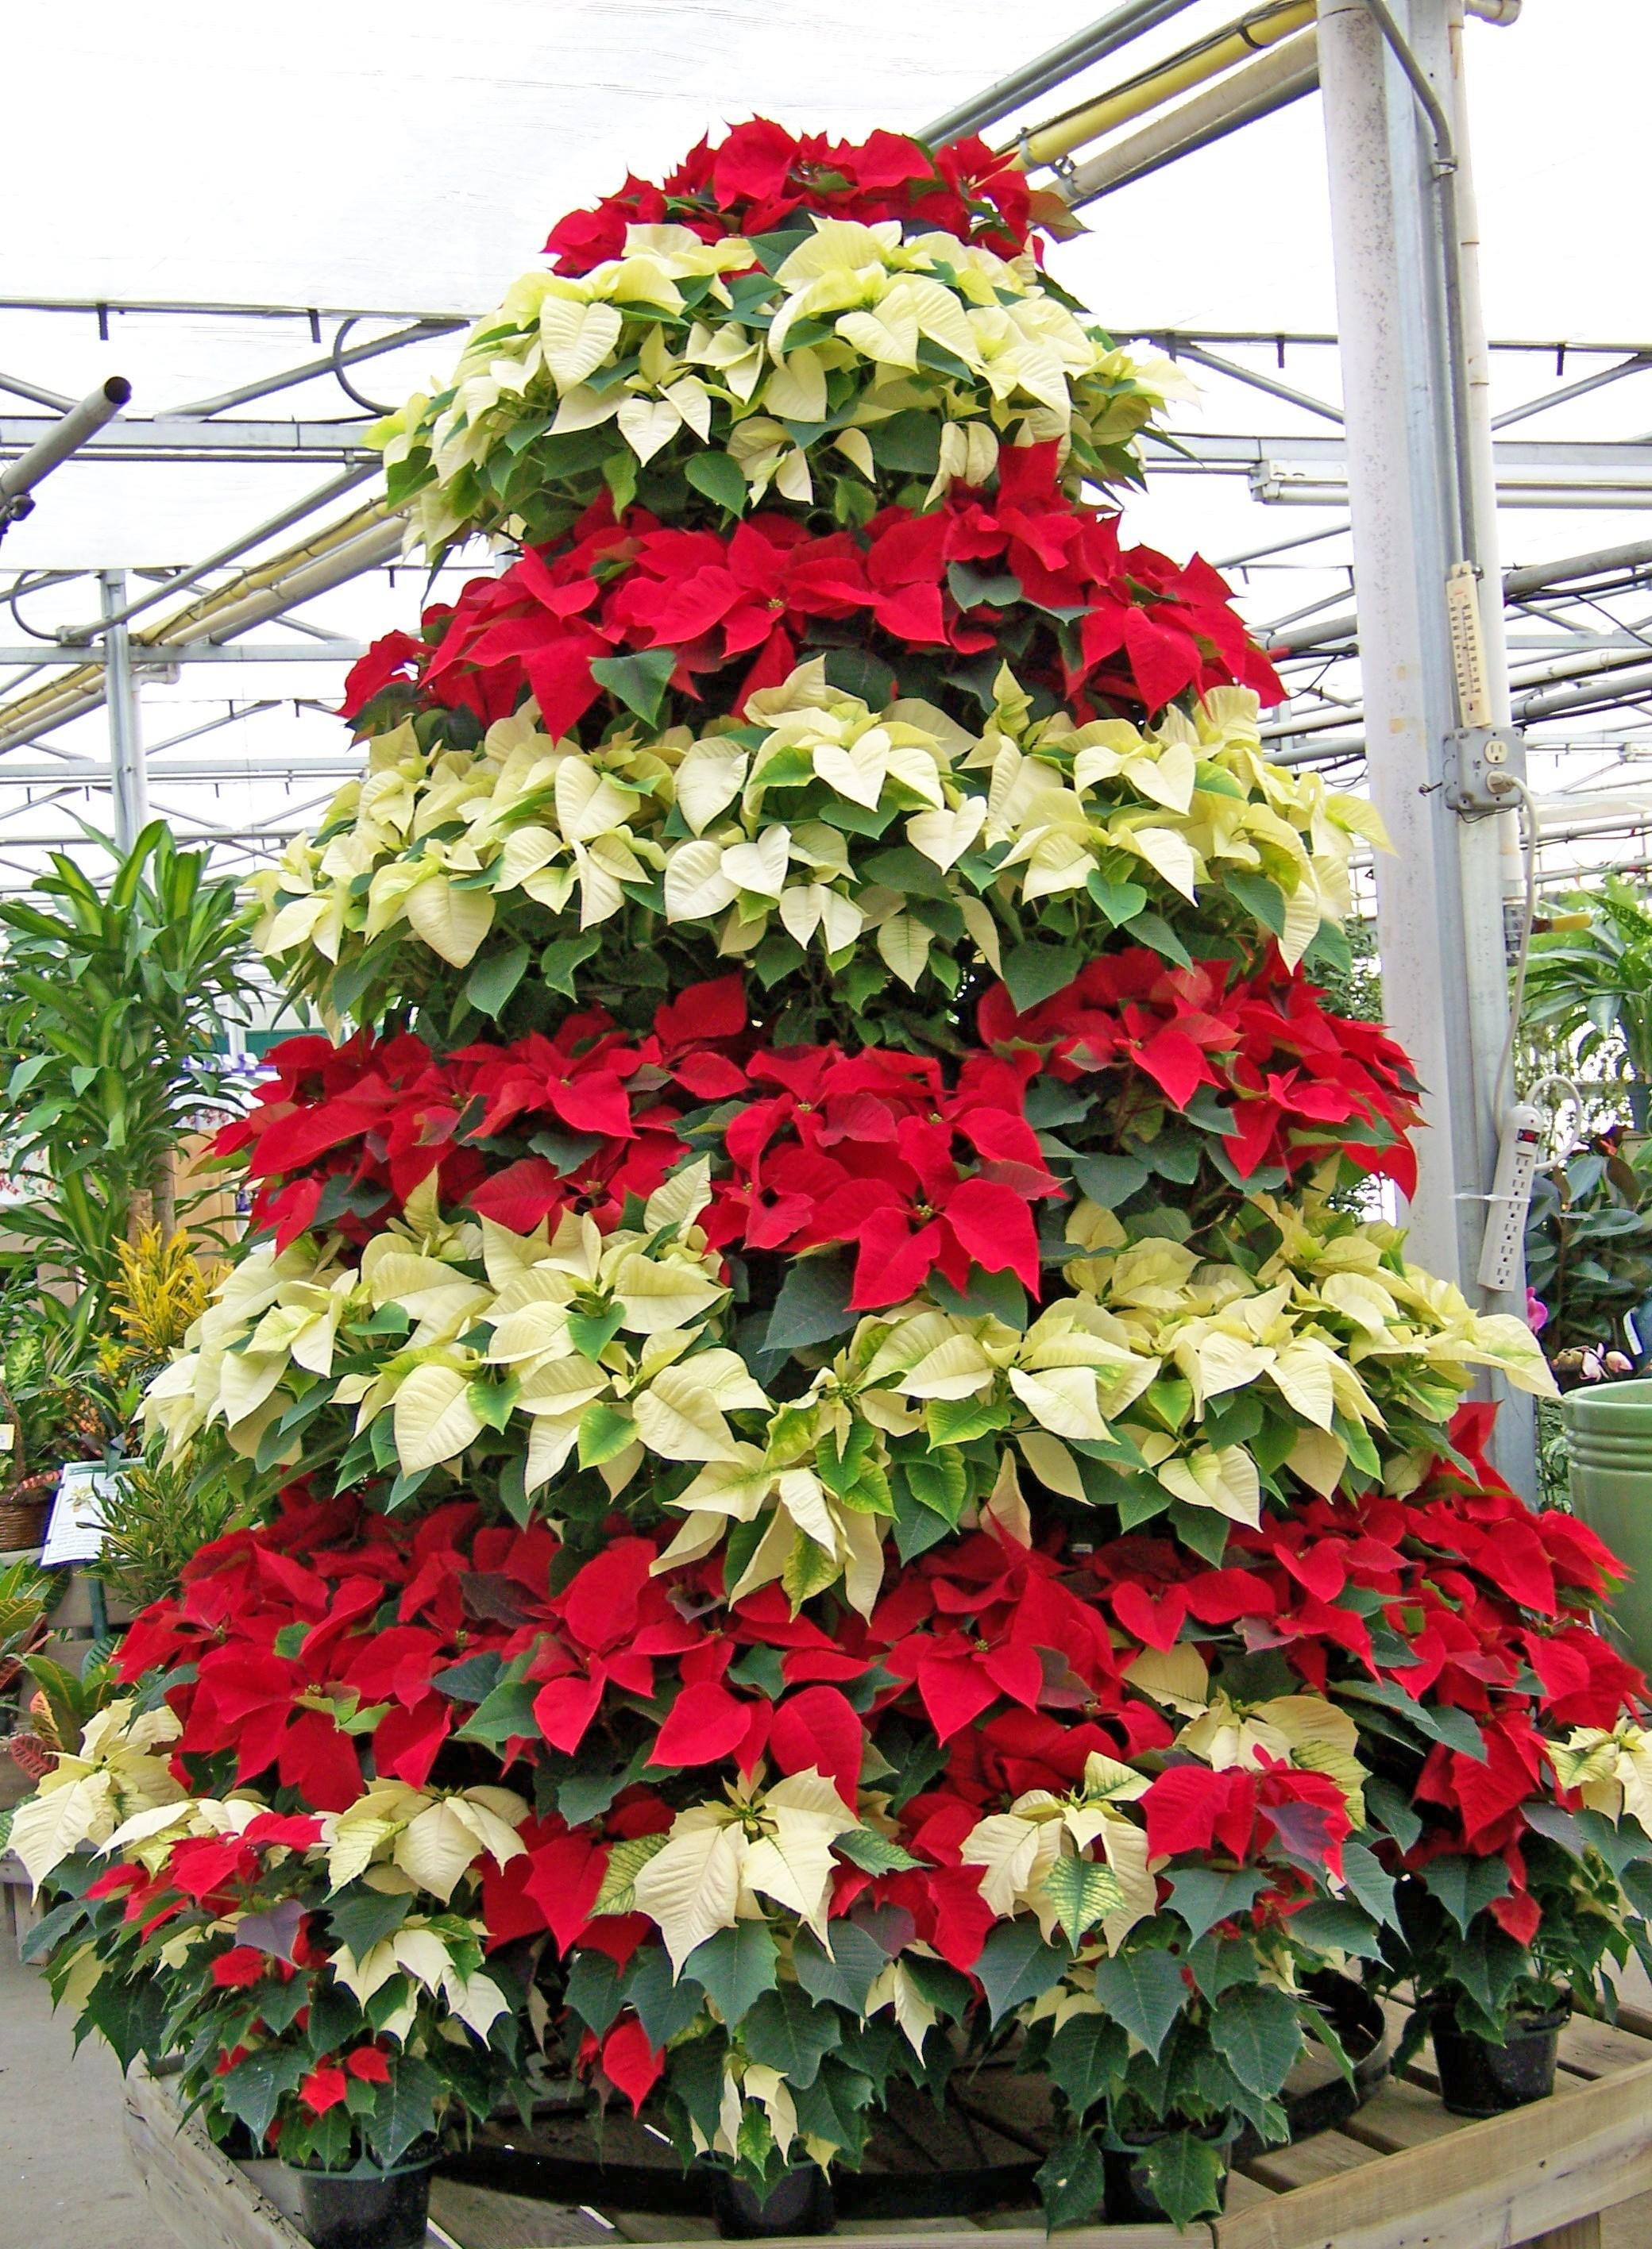 Celebrate National Poinsettia Day Krohn Conservatory